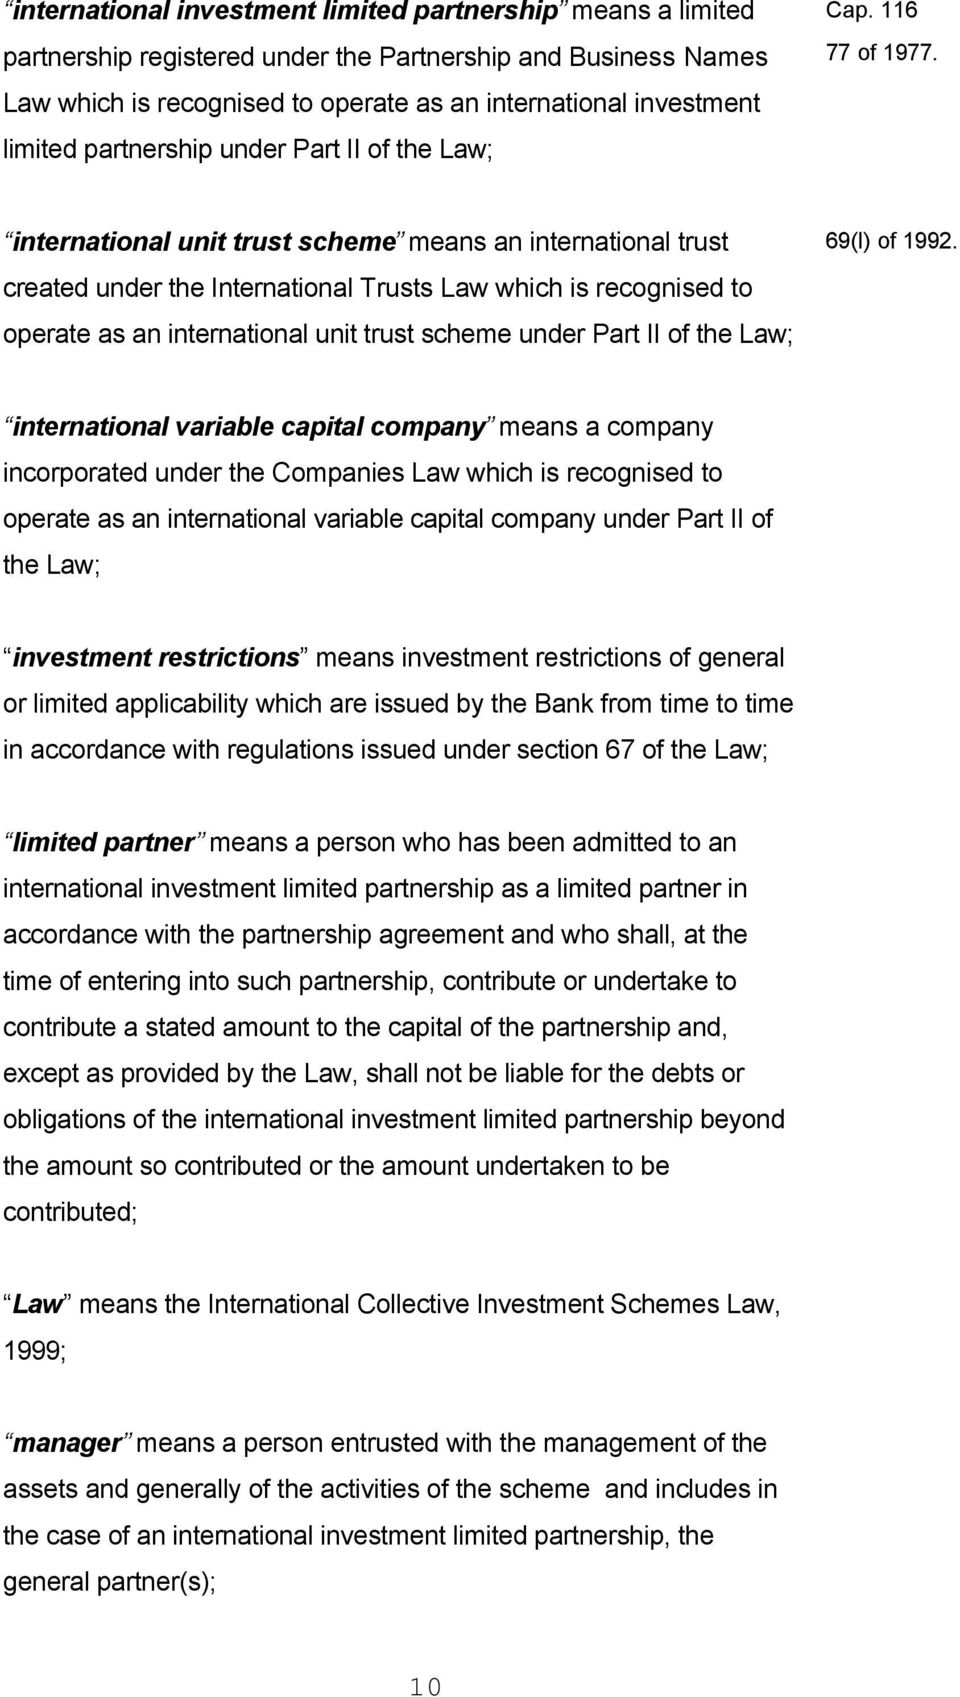 INTERNATIONAL COLLECTIVE INVESTMENT SCHEMES LAW - PDF